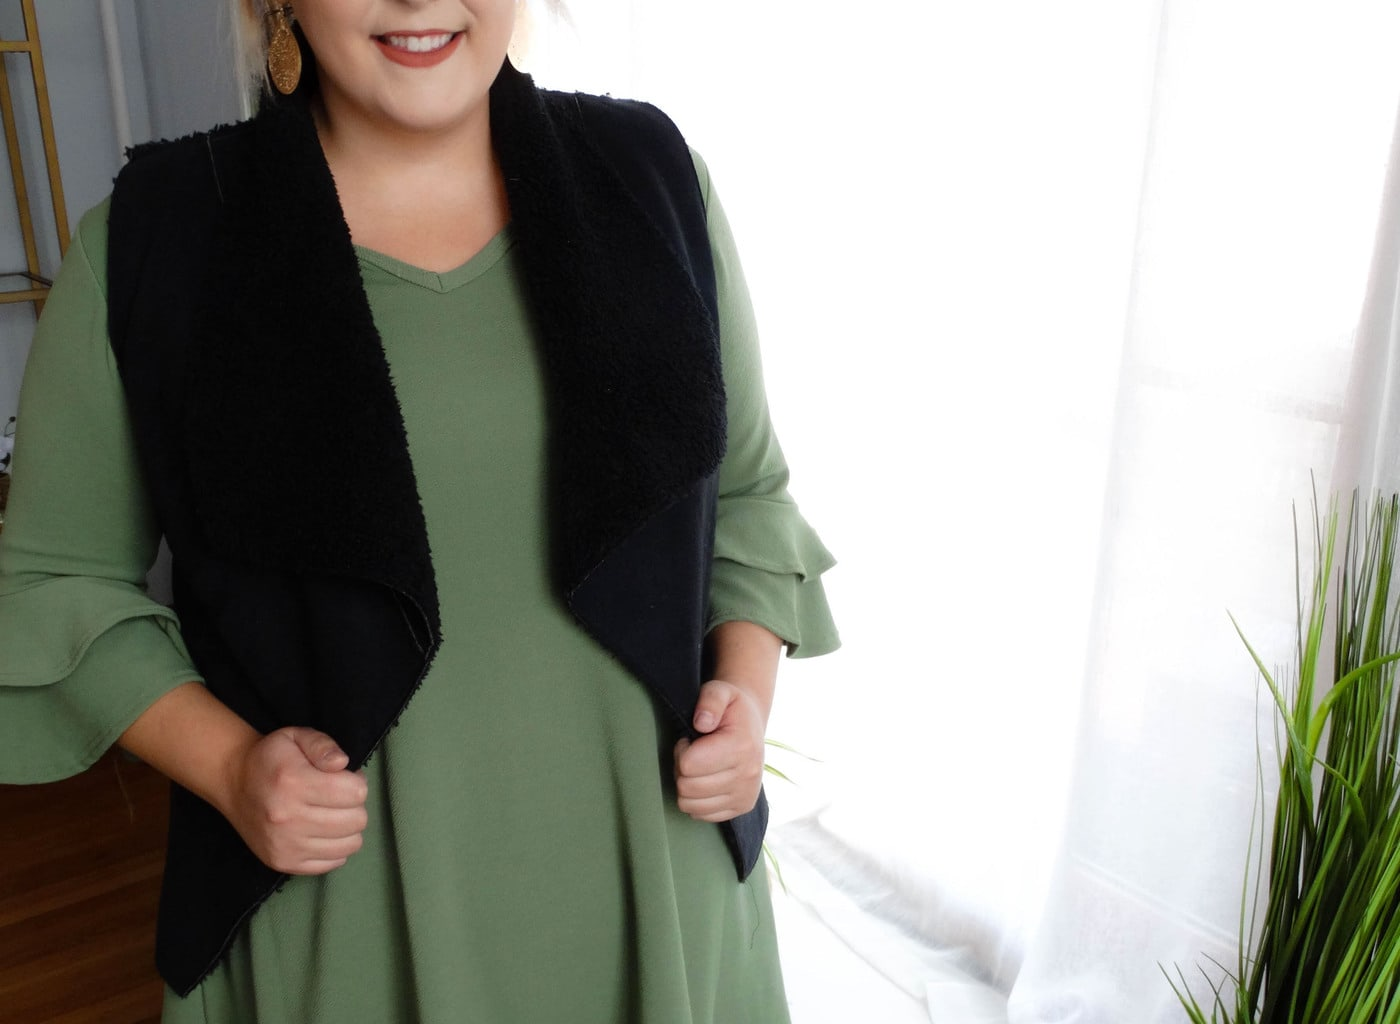 West Virginia University student Sydney wears a green dress with layered ruffled sleeves and a black furry vest.